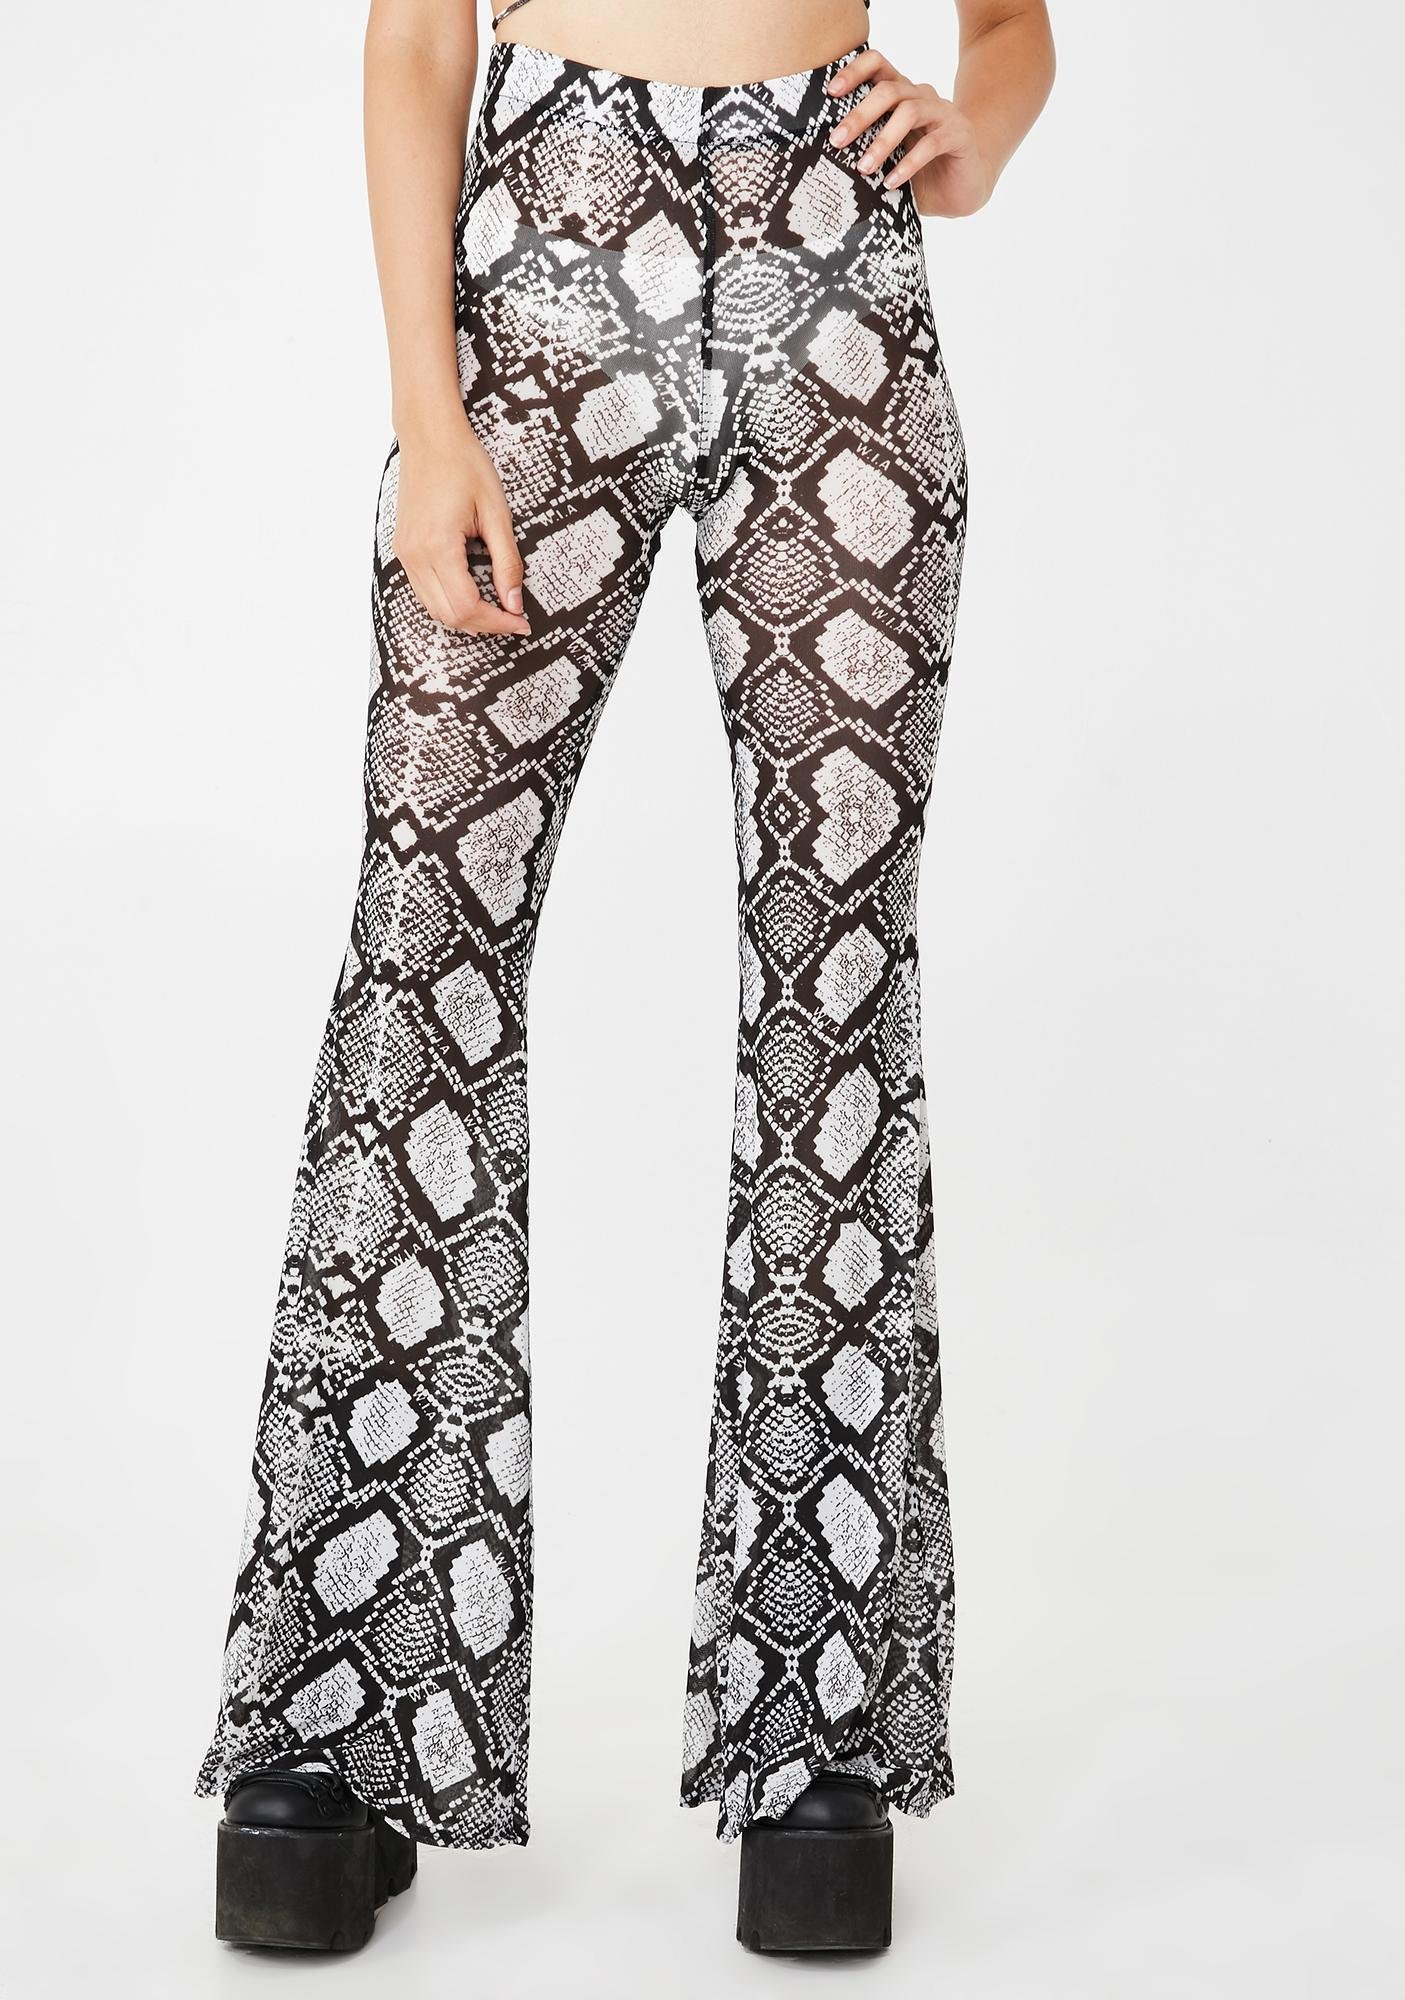 W.I.A Python Printed Sheer Bell Bottoms